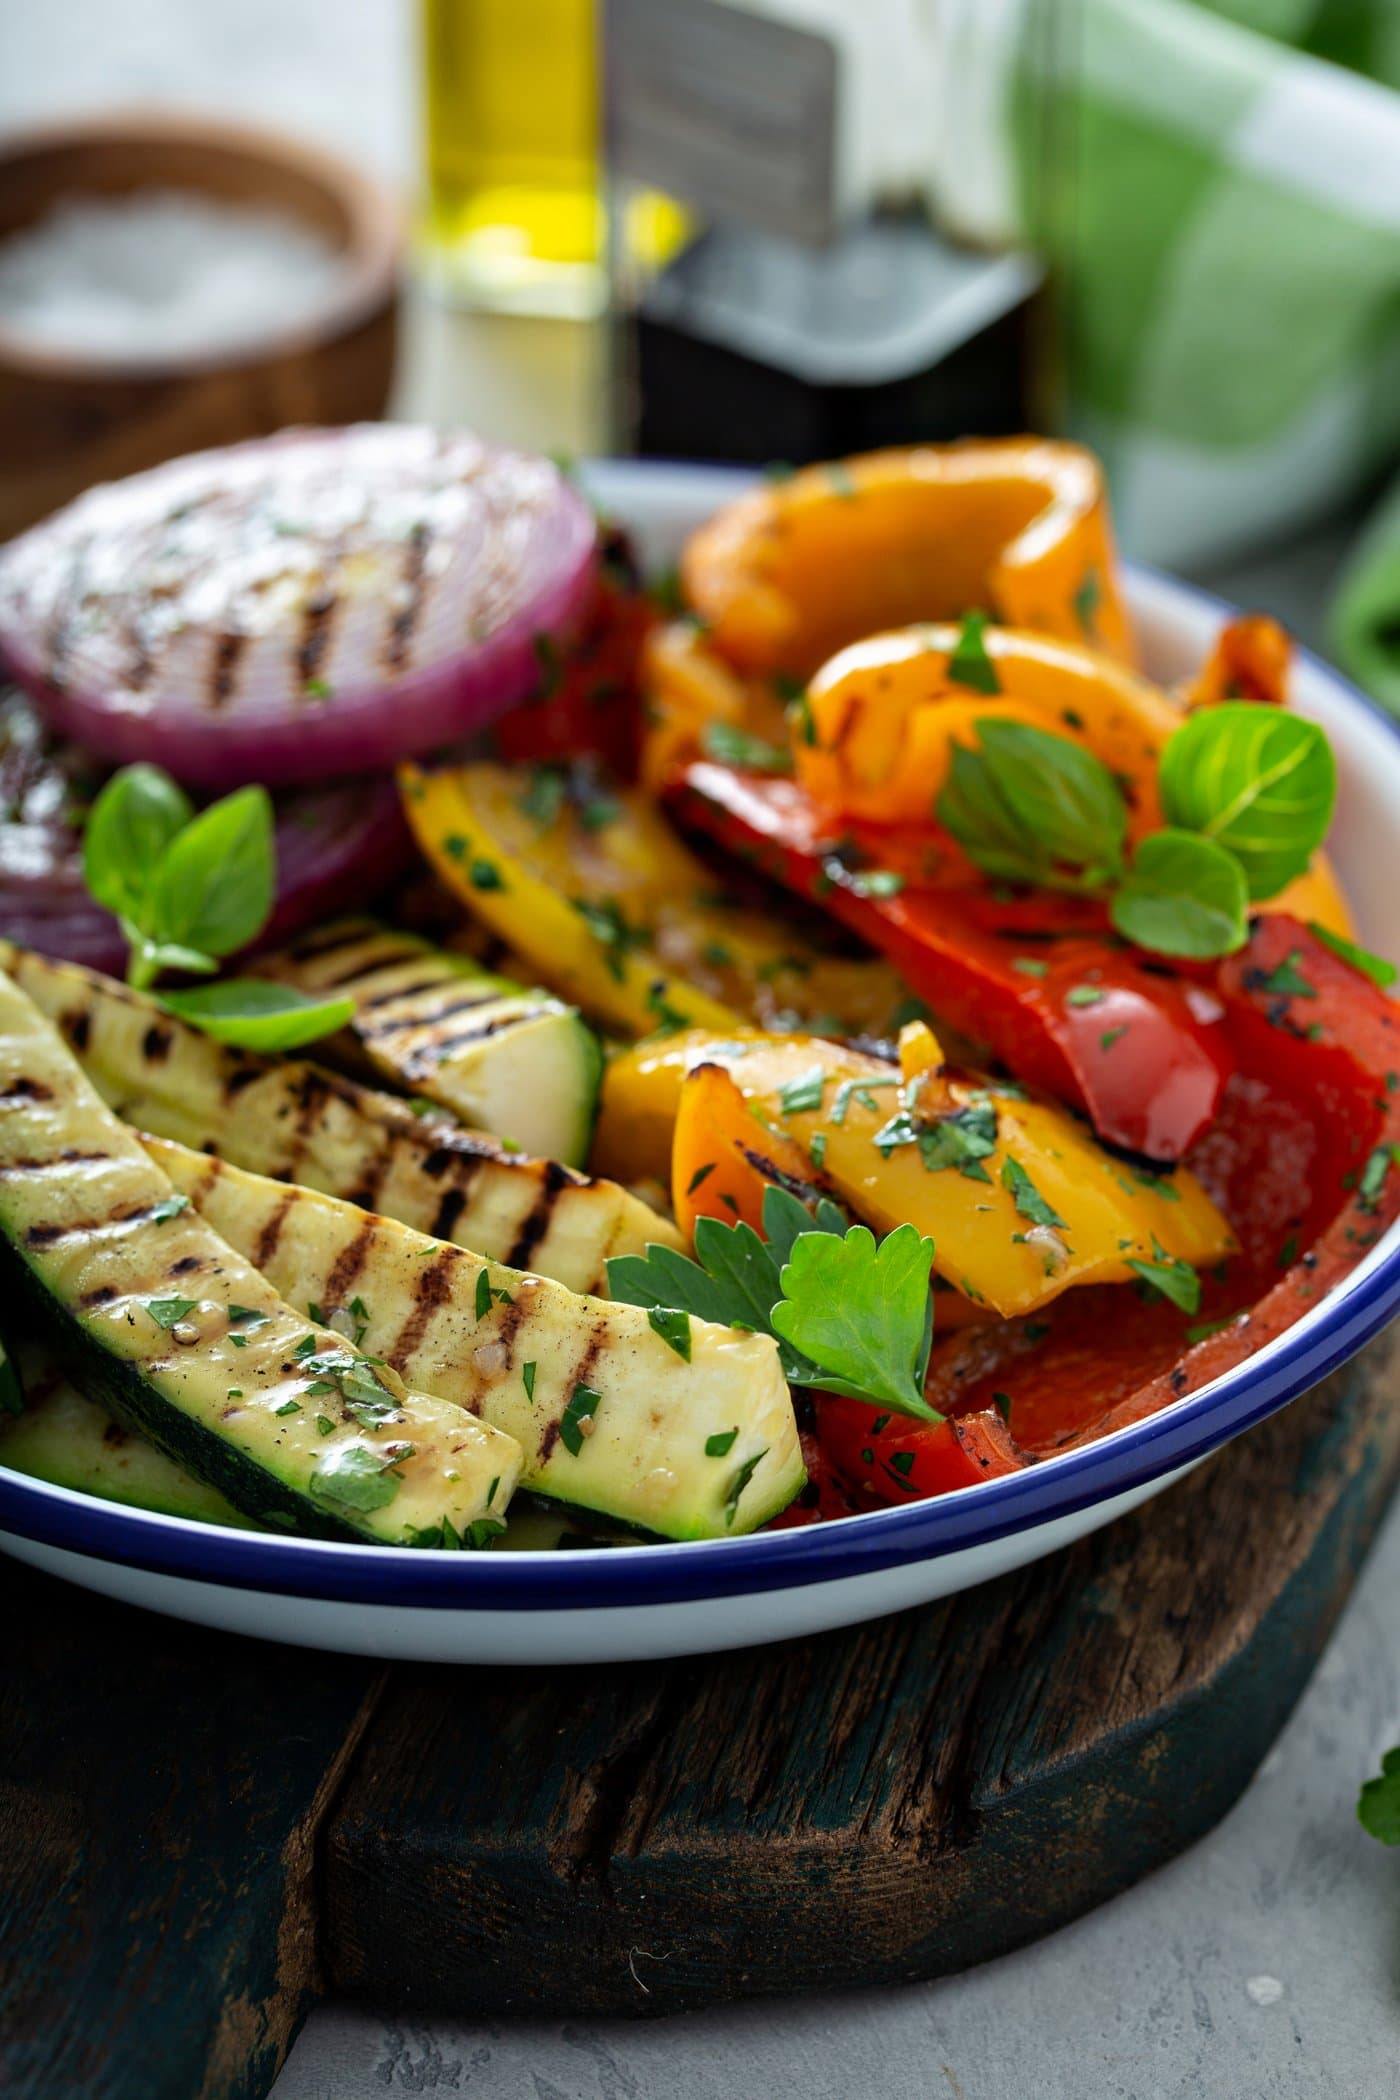 A serving dish of grilled zucchini, red and yellow bell peppers and red onions. There are golden grill marks on the vegetables and parsley leaves sprinkled on top.